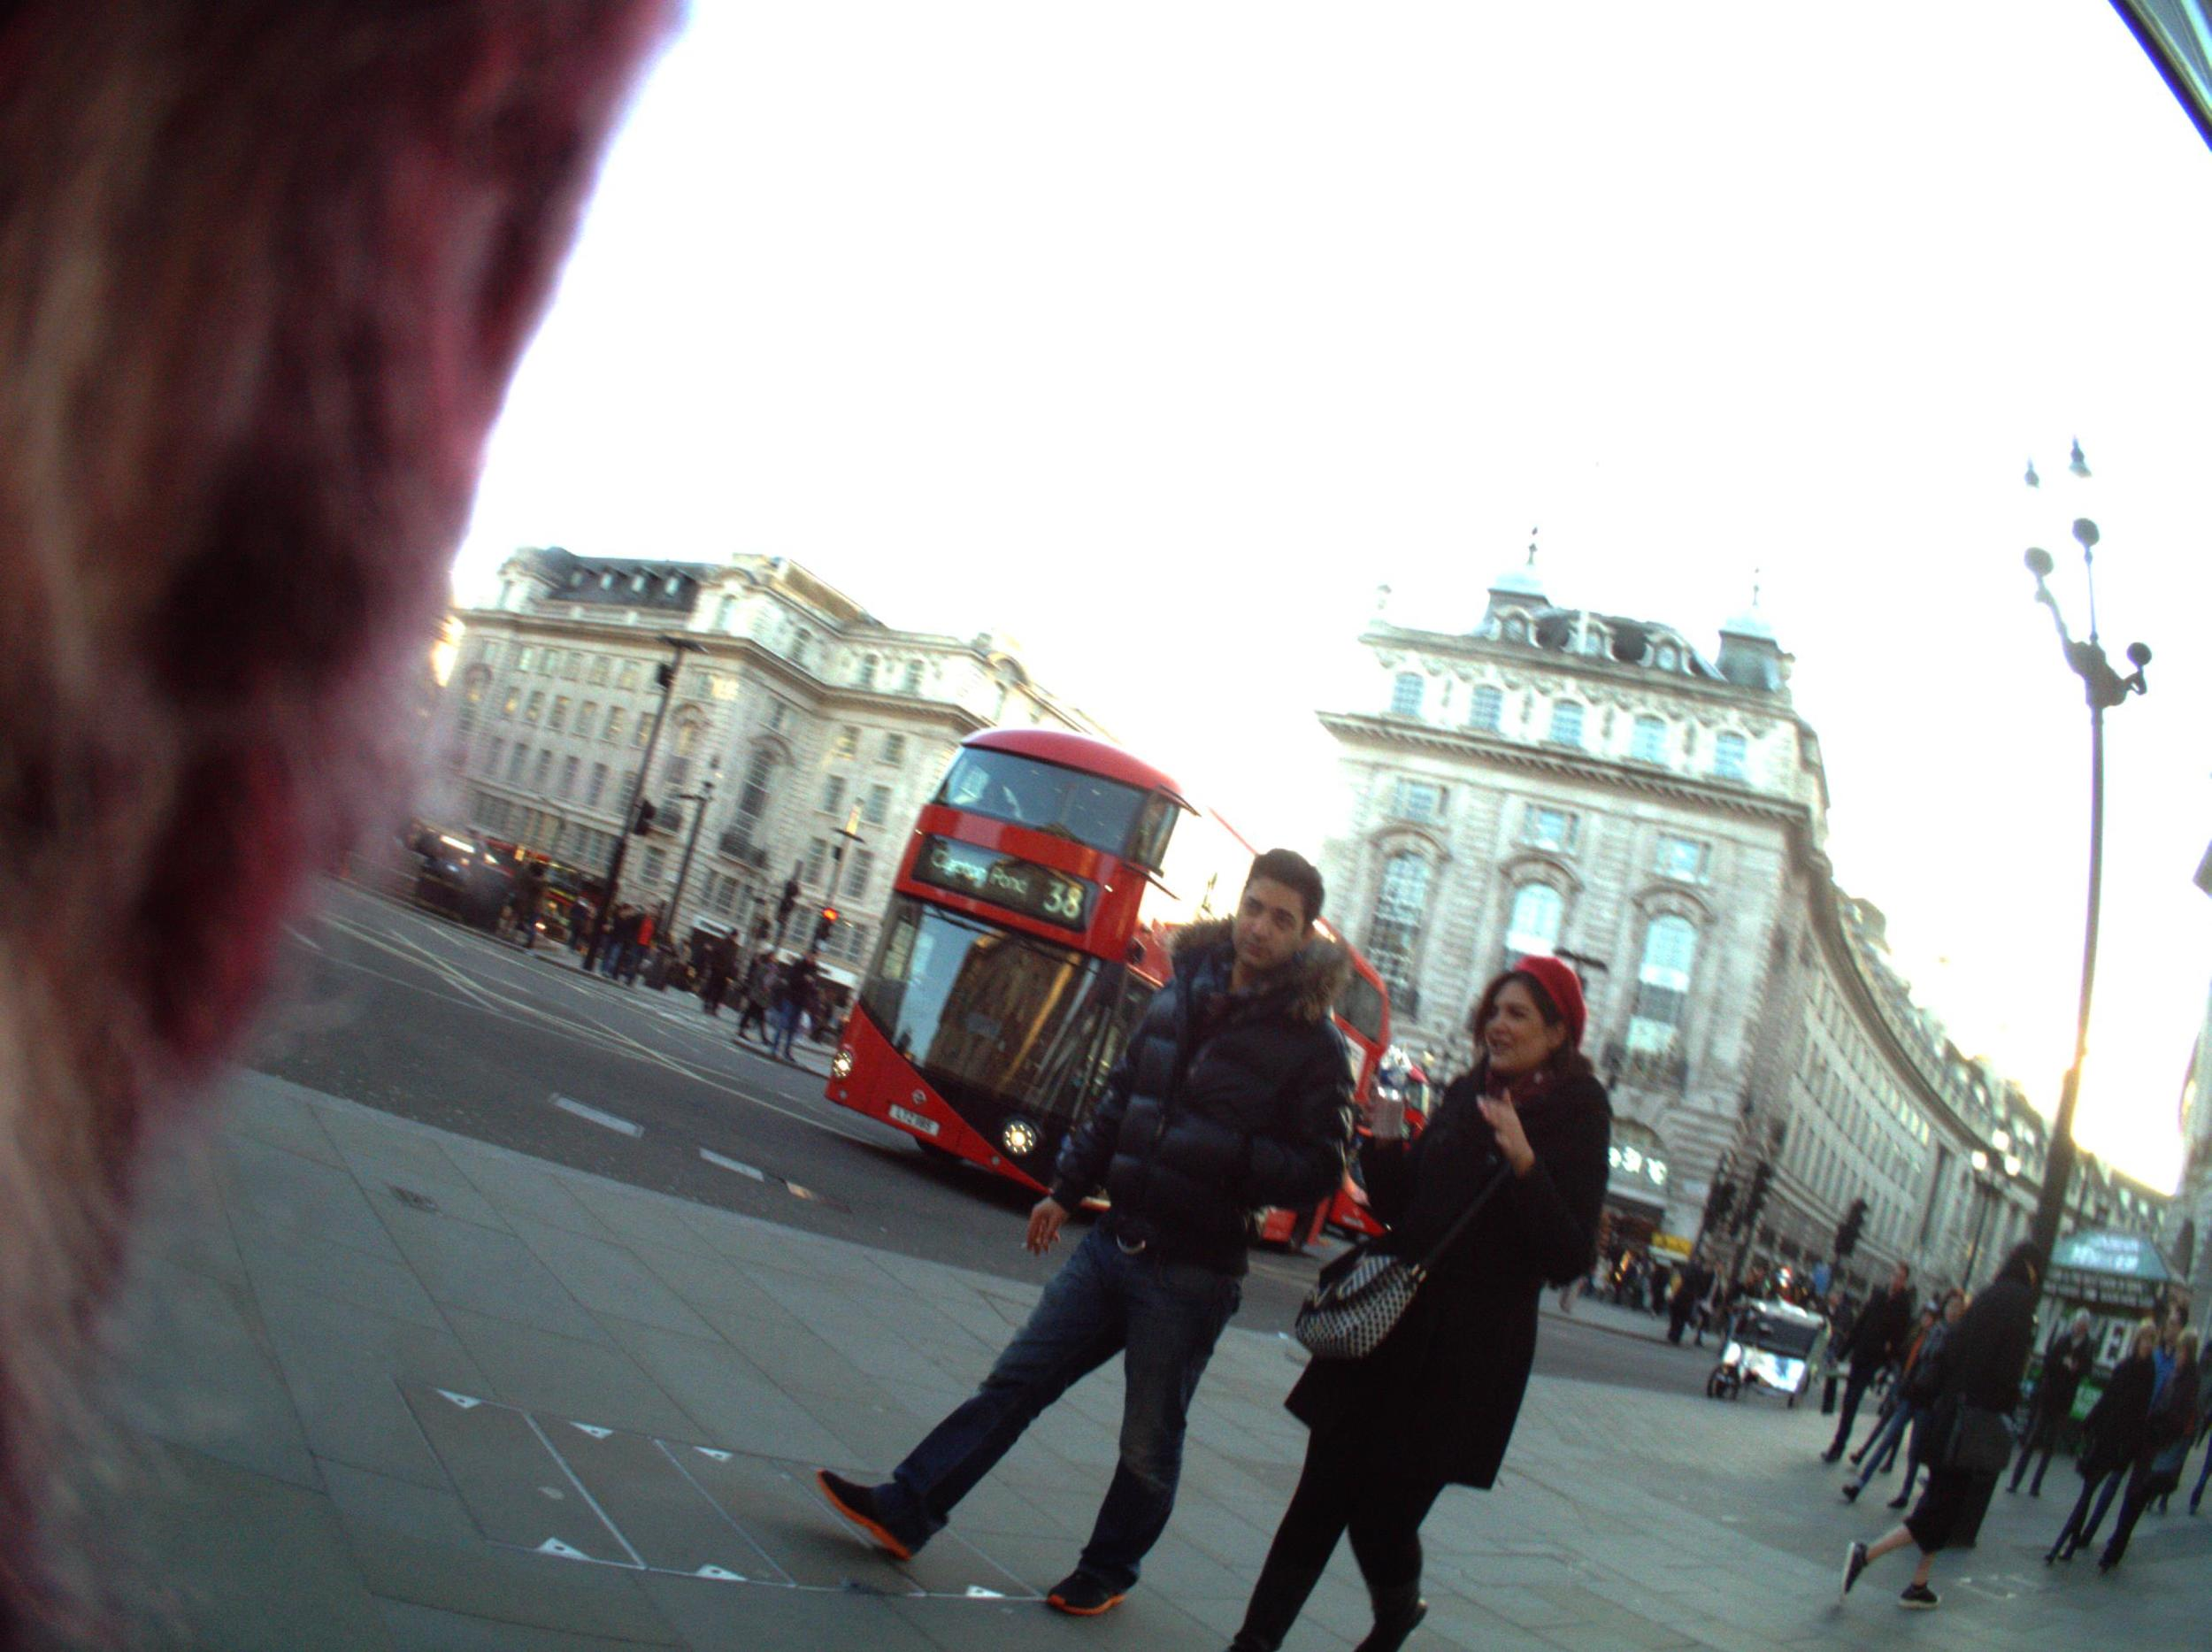 Image 02. Experimenting with methods - Image taken automatically while walking around Piccadilly Circus, London. 02 February 2015.